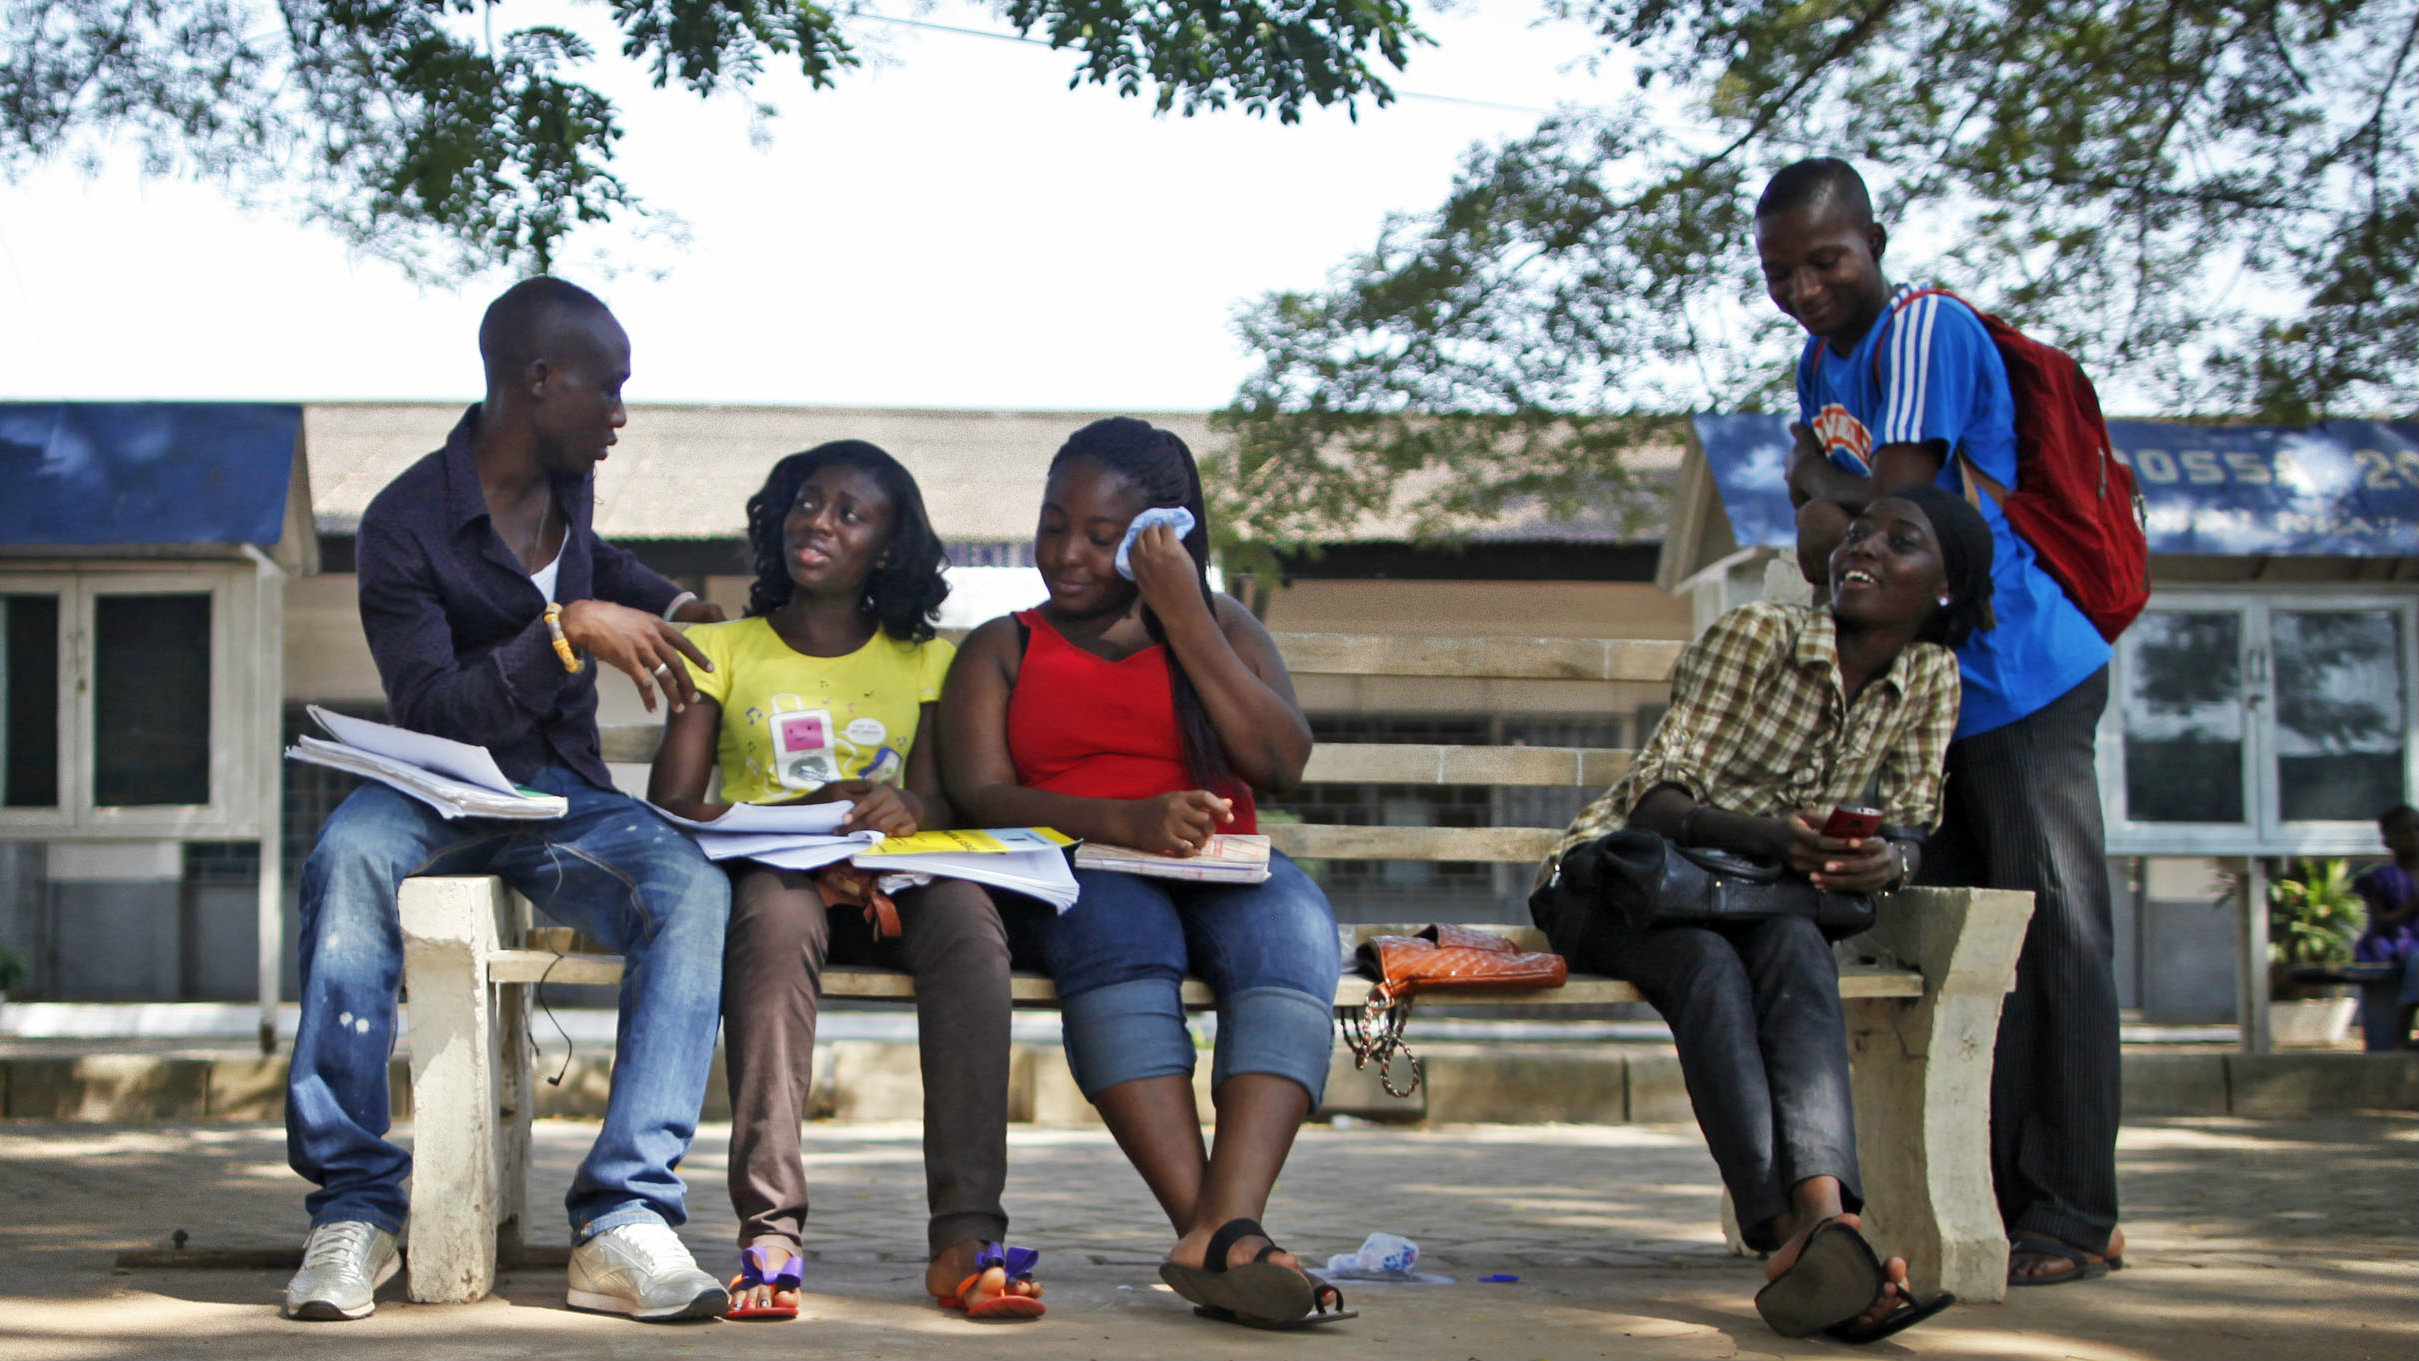 In this Tuesday, Nov. 20, 2012 photo, political science students Abdul Jalil Ykbu, background left, discusses work with fellow students at the University of Ghana in Accra, Ghana. (AP Photo/Gabriela Barnuevo)